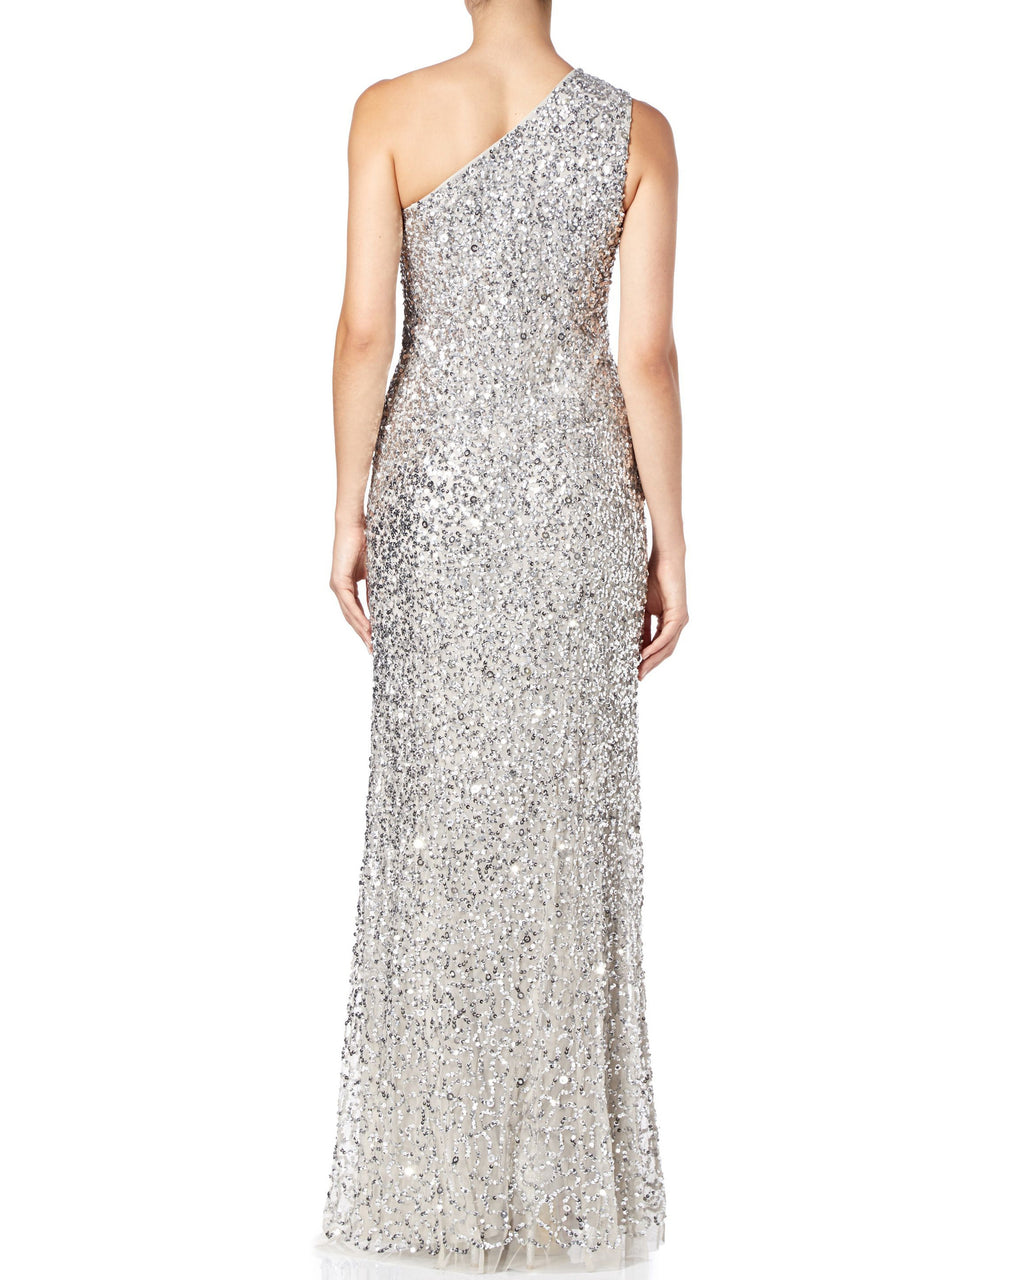 One-Shoulder Sequin Silver Gown